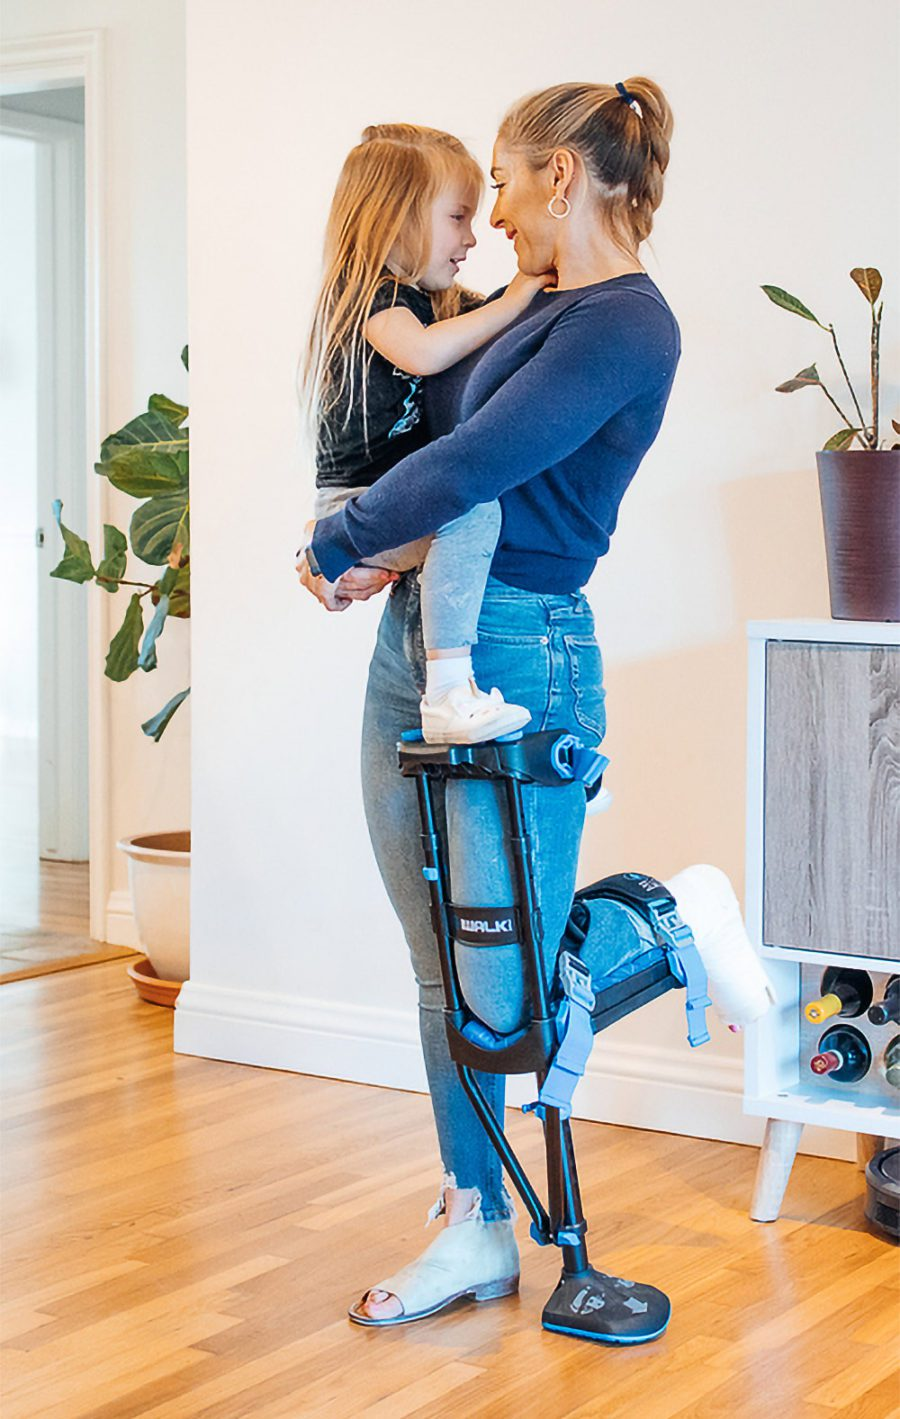 Woman with broken foot holding her child with iWALK3.0 crutch